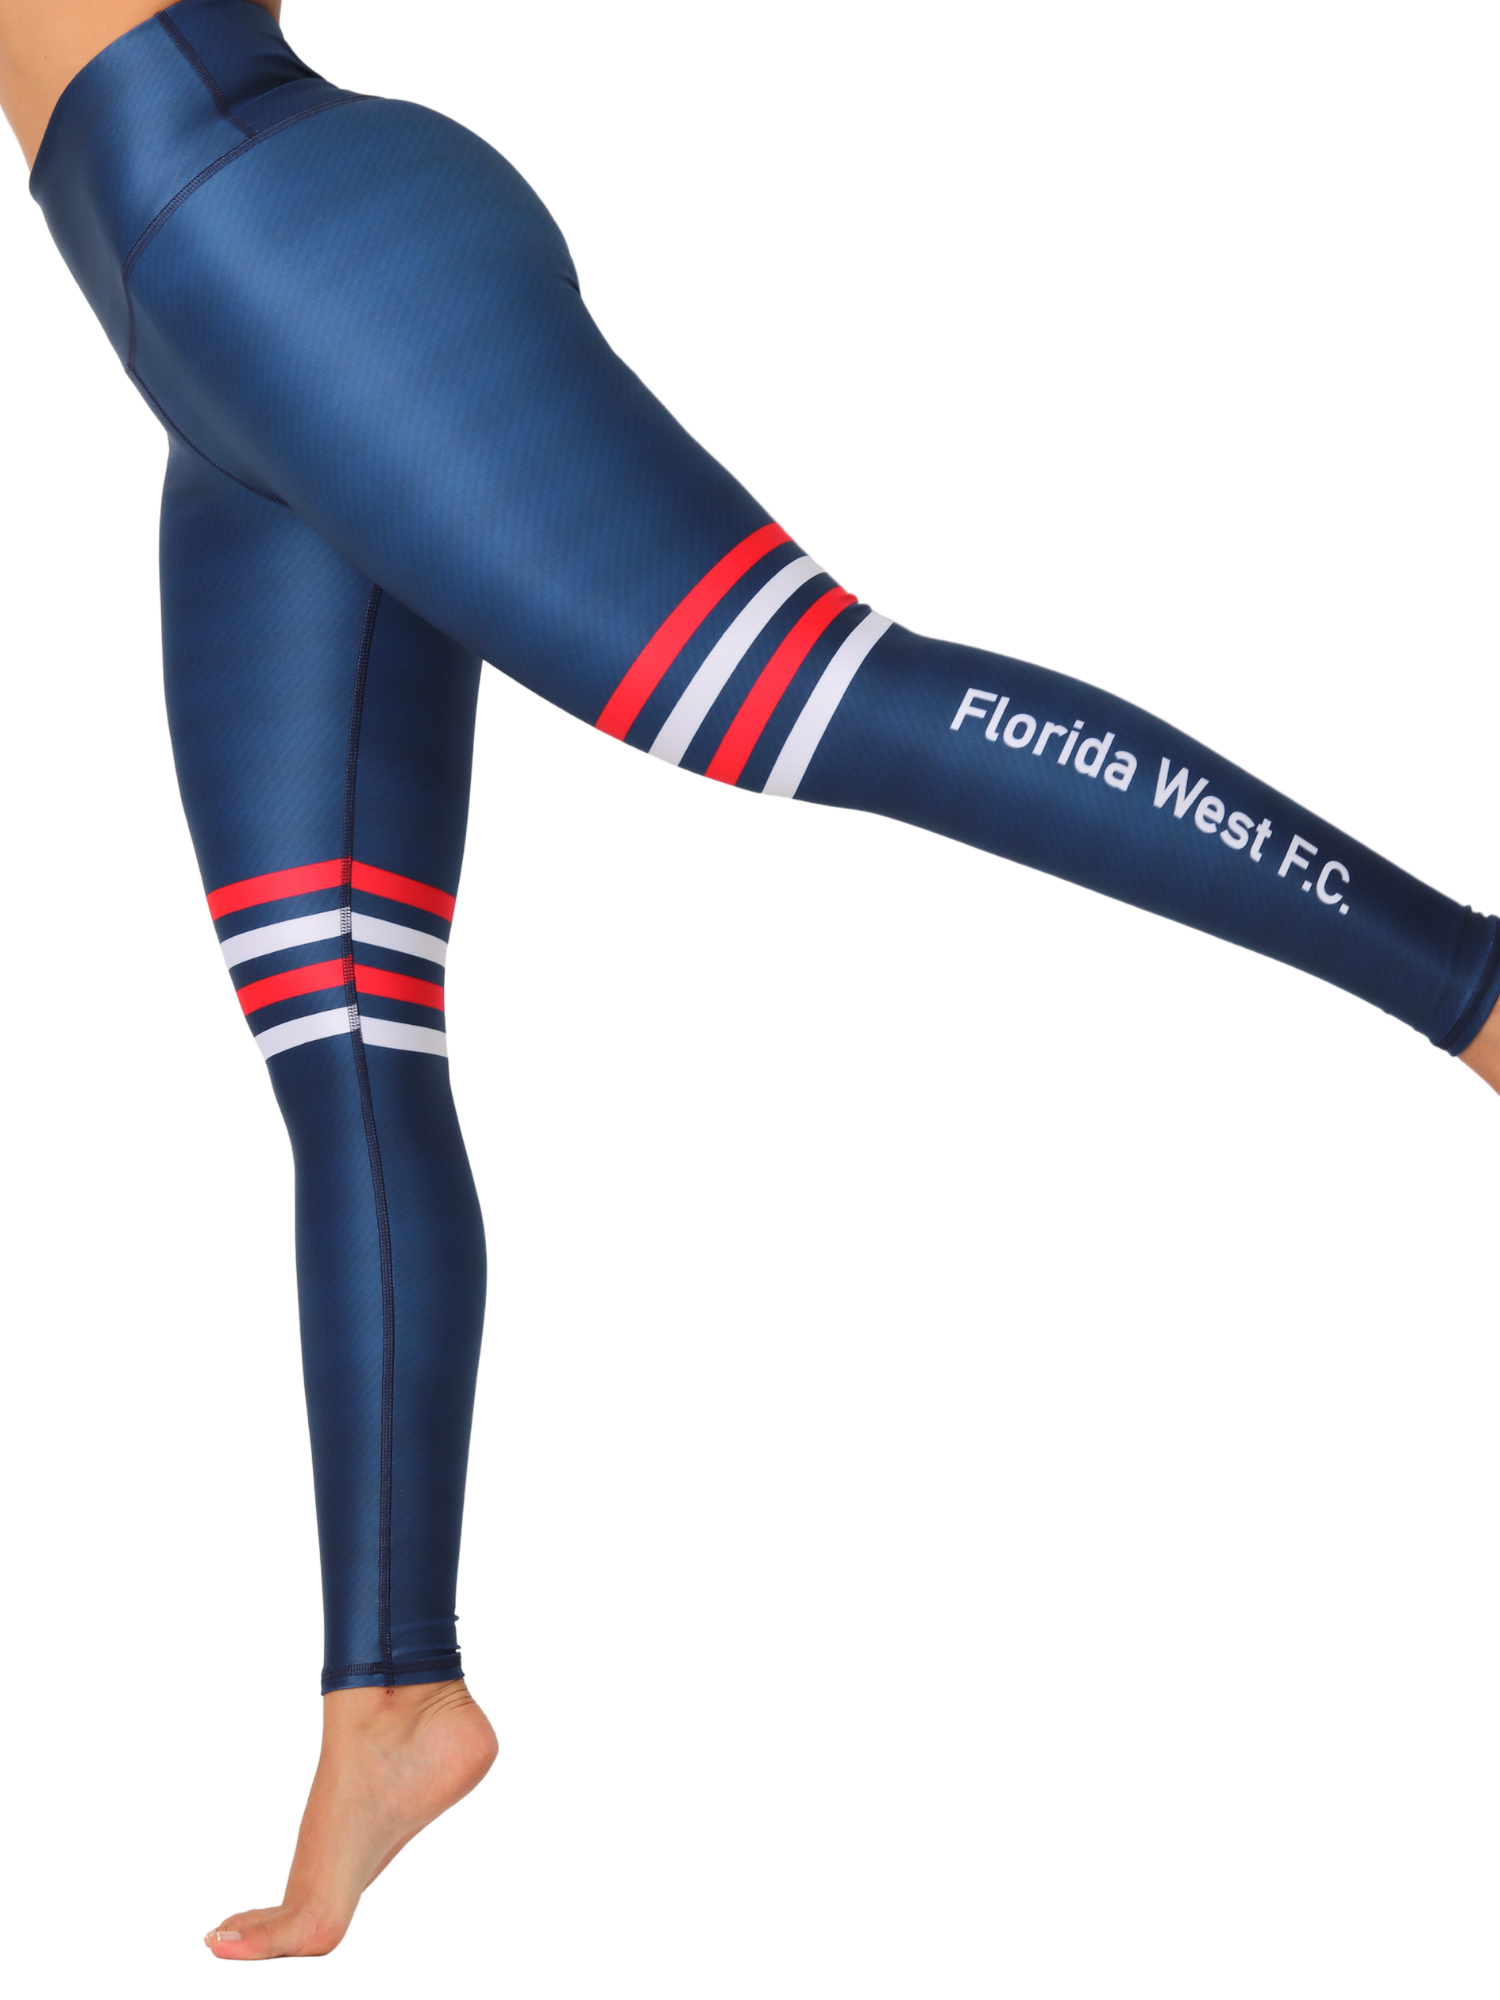 2020 Florida West F.C Leggings